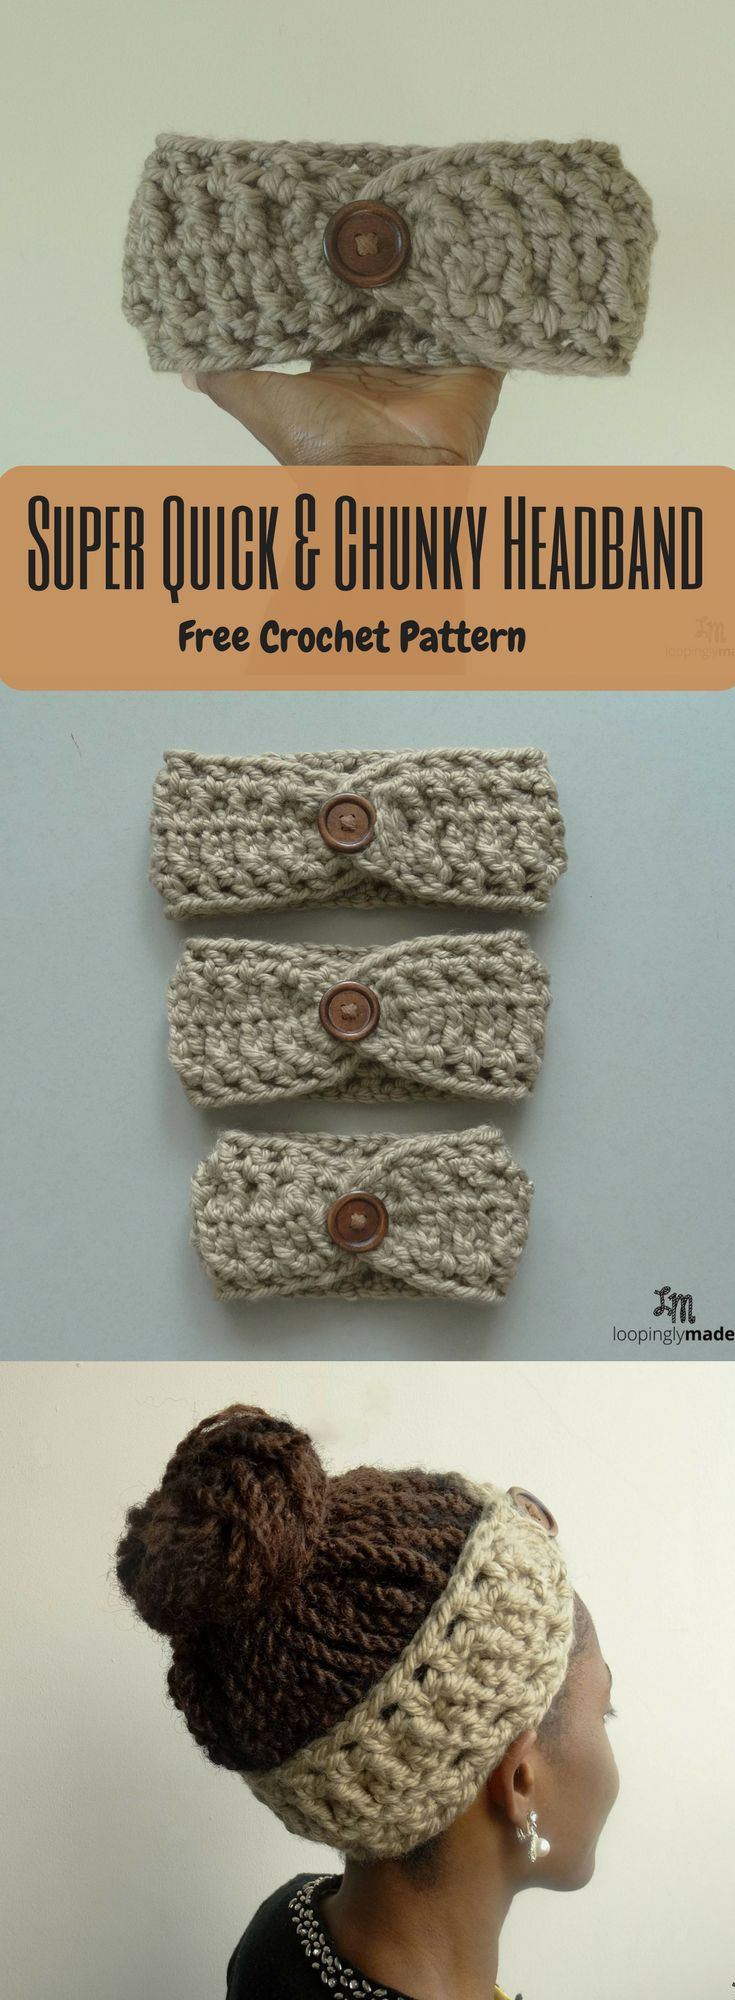 A quick and chunky crochet headband to make. Try it!